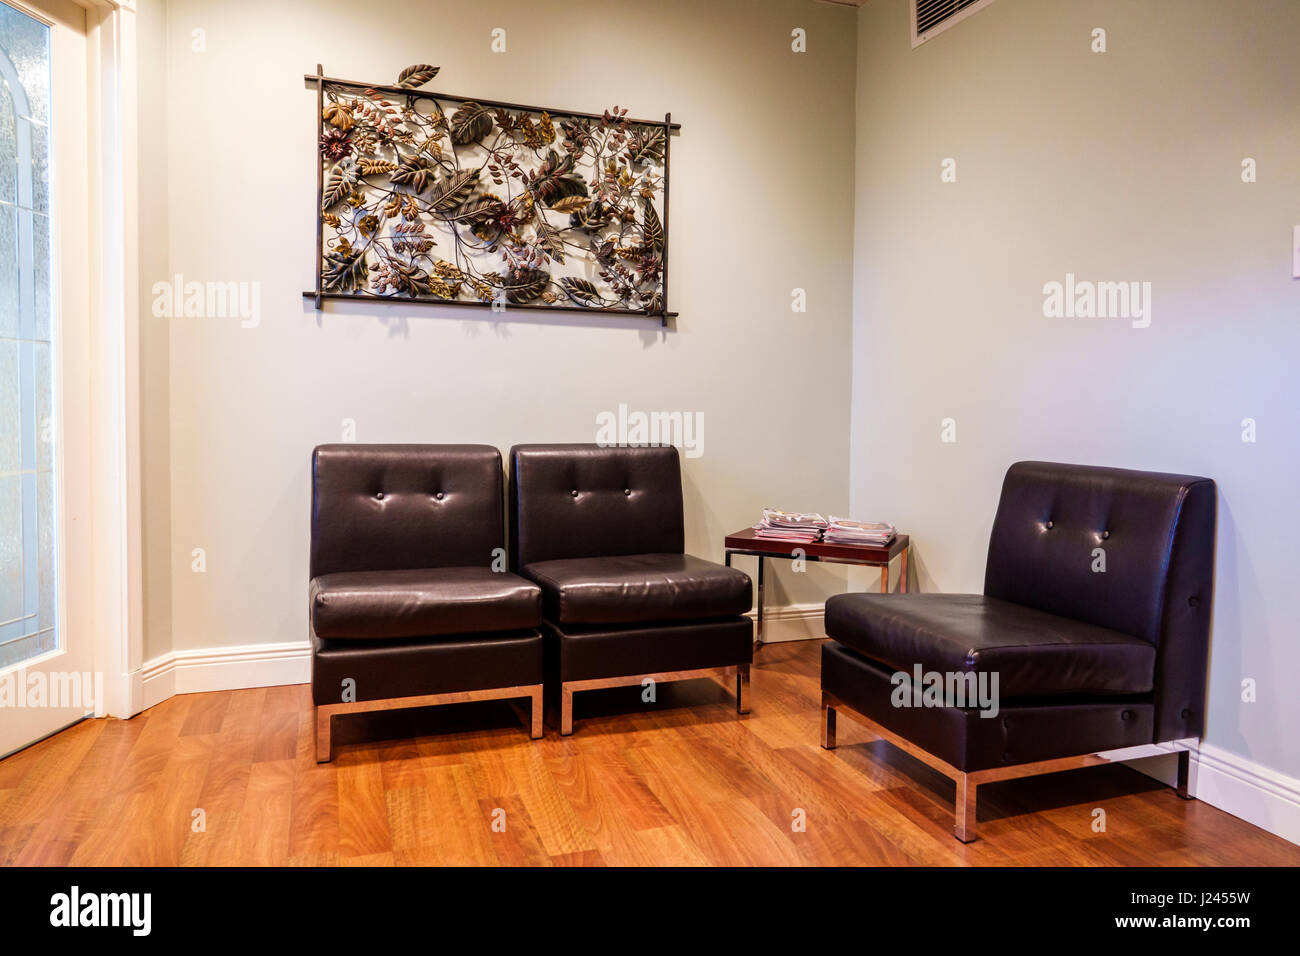 Miami Beach Florida waiting room doctor's office austere black leather chairs wall decor hardwood flooring plain - Stock Image